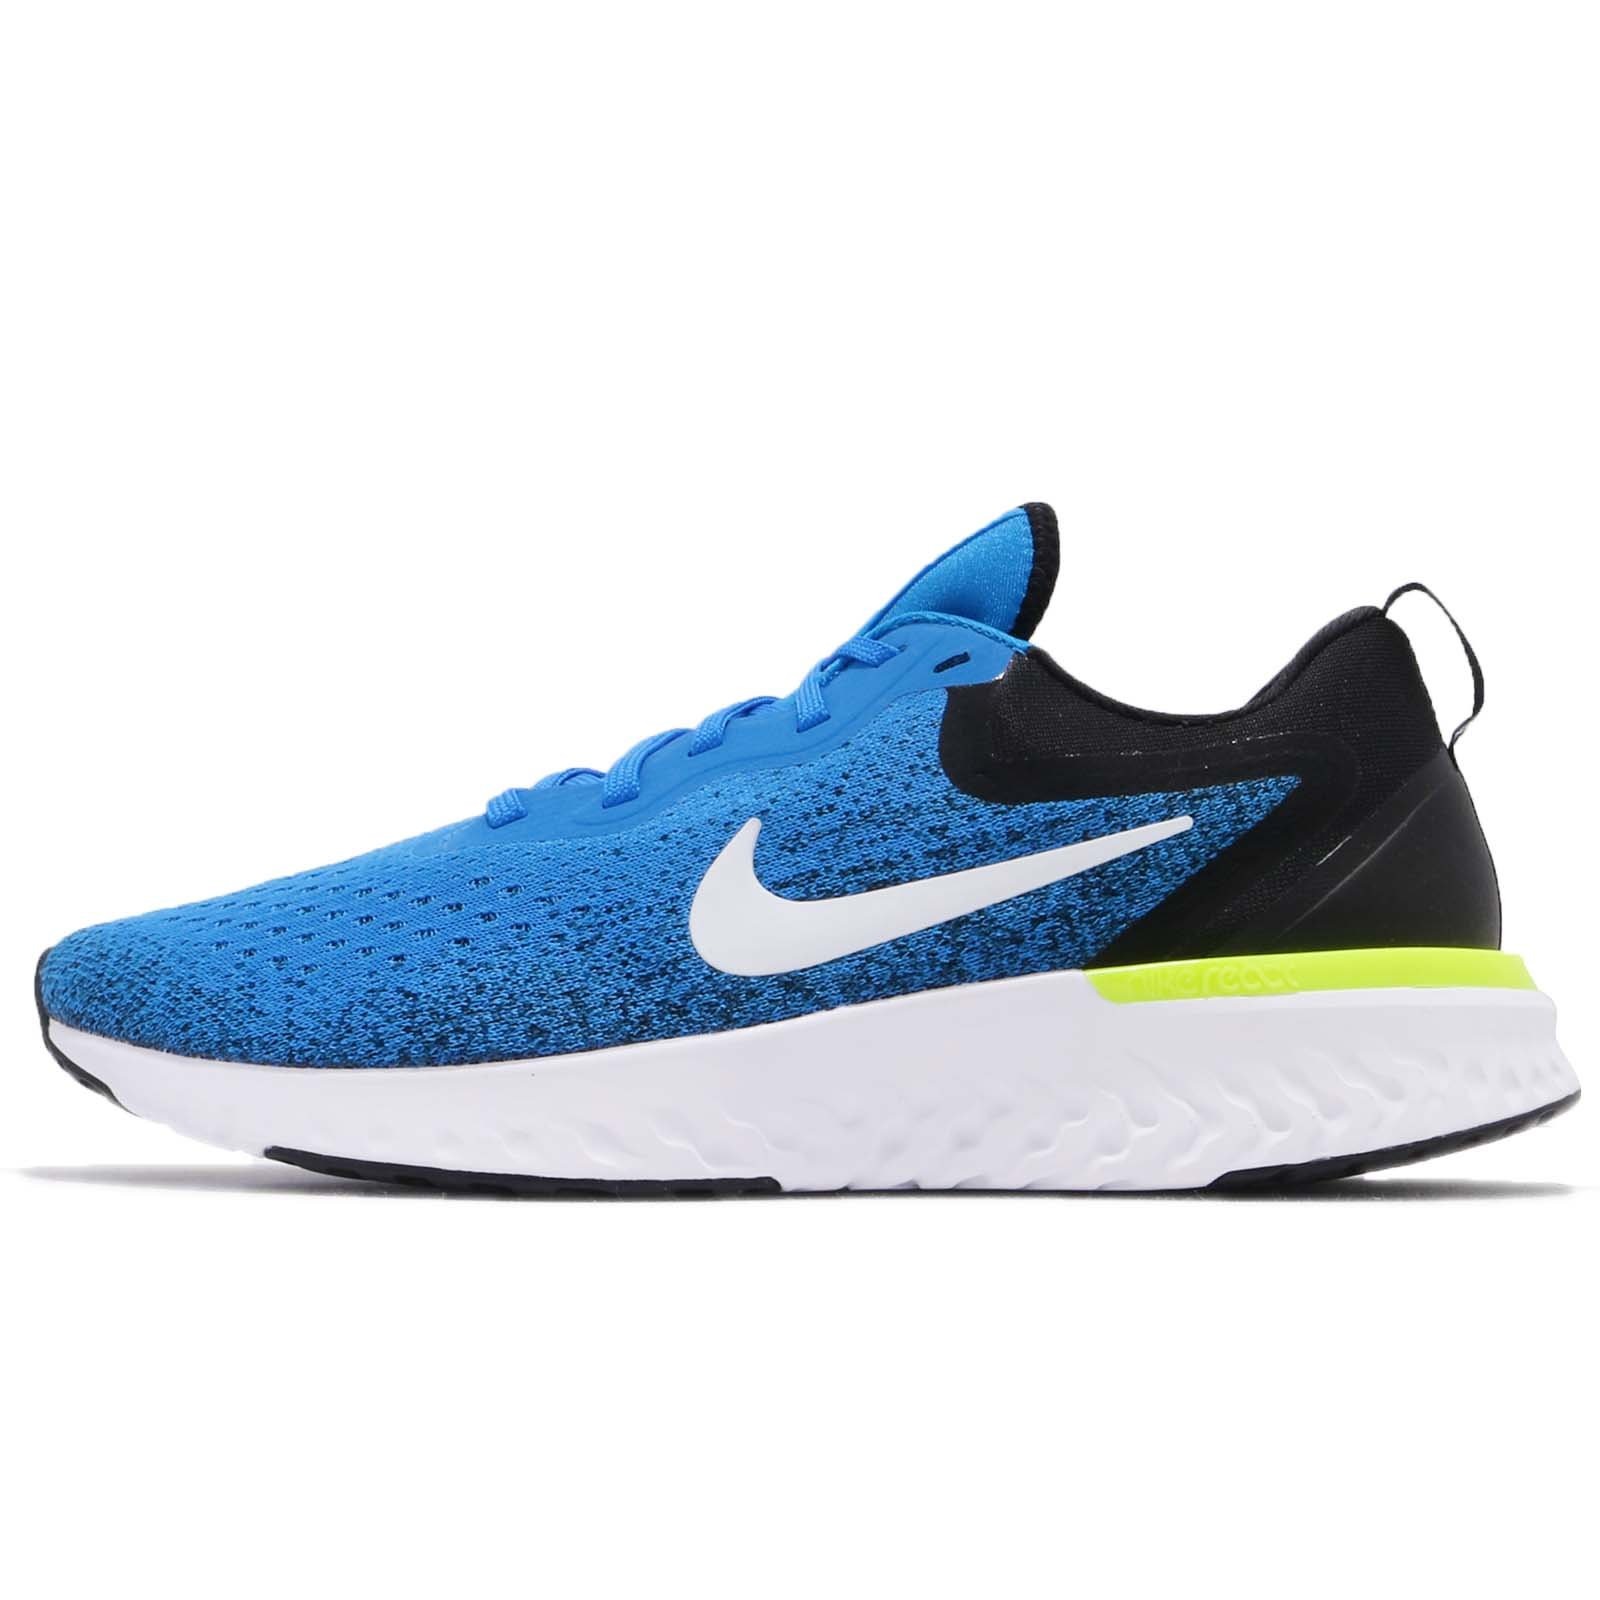 Nike Men's Odyssey React Running Shoes (7.5, Photo Blue/Black) by Nike (Image #1)